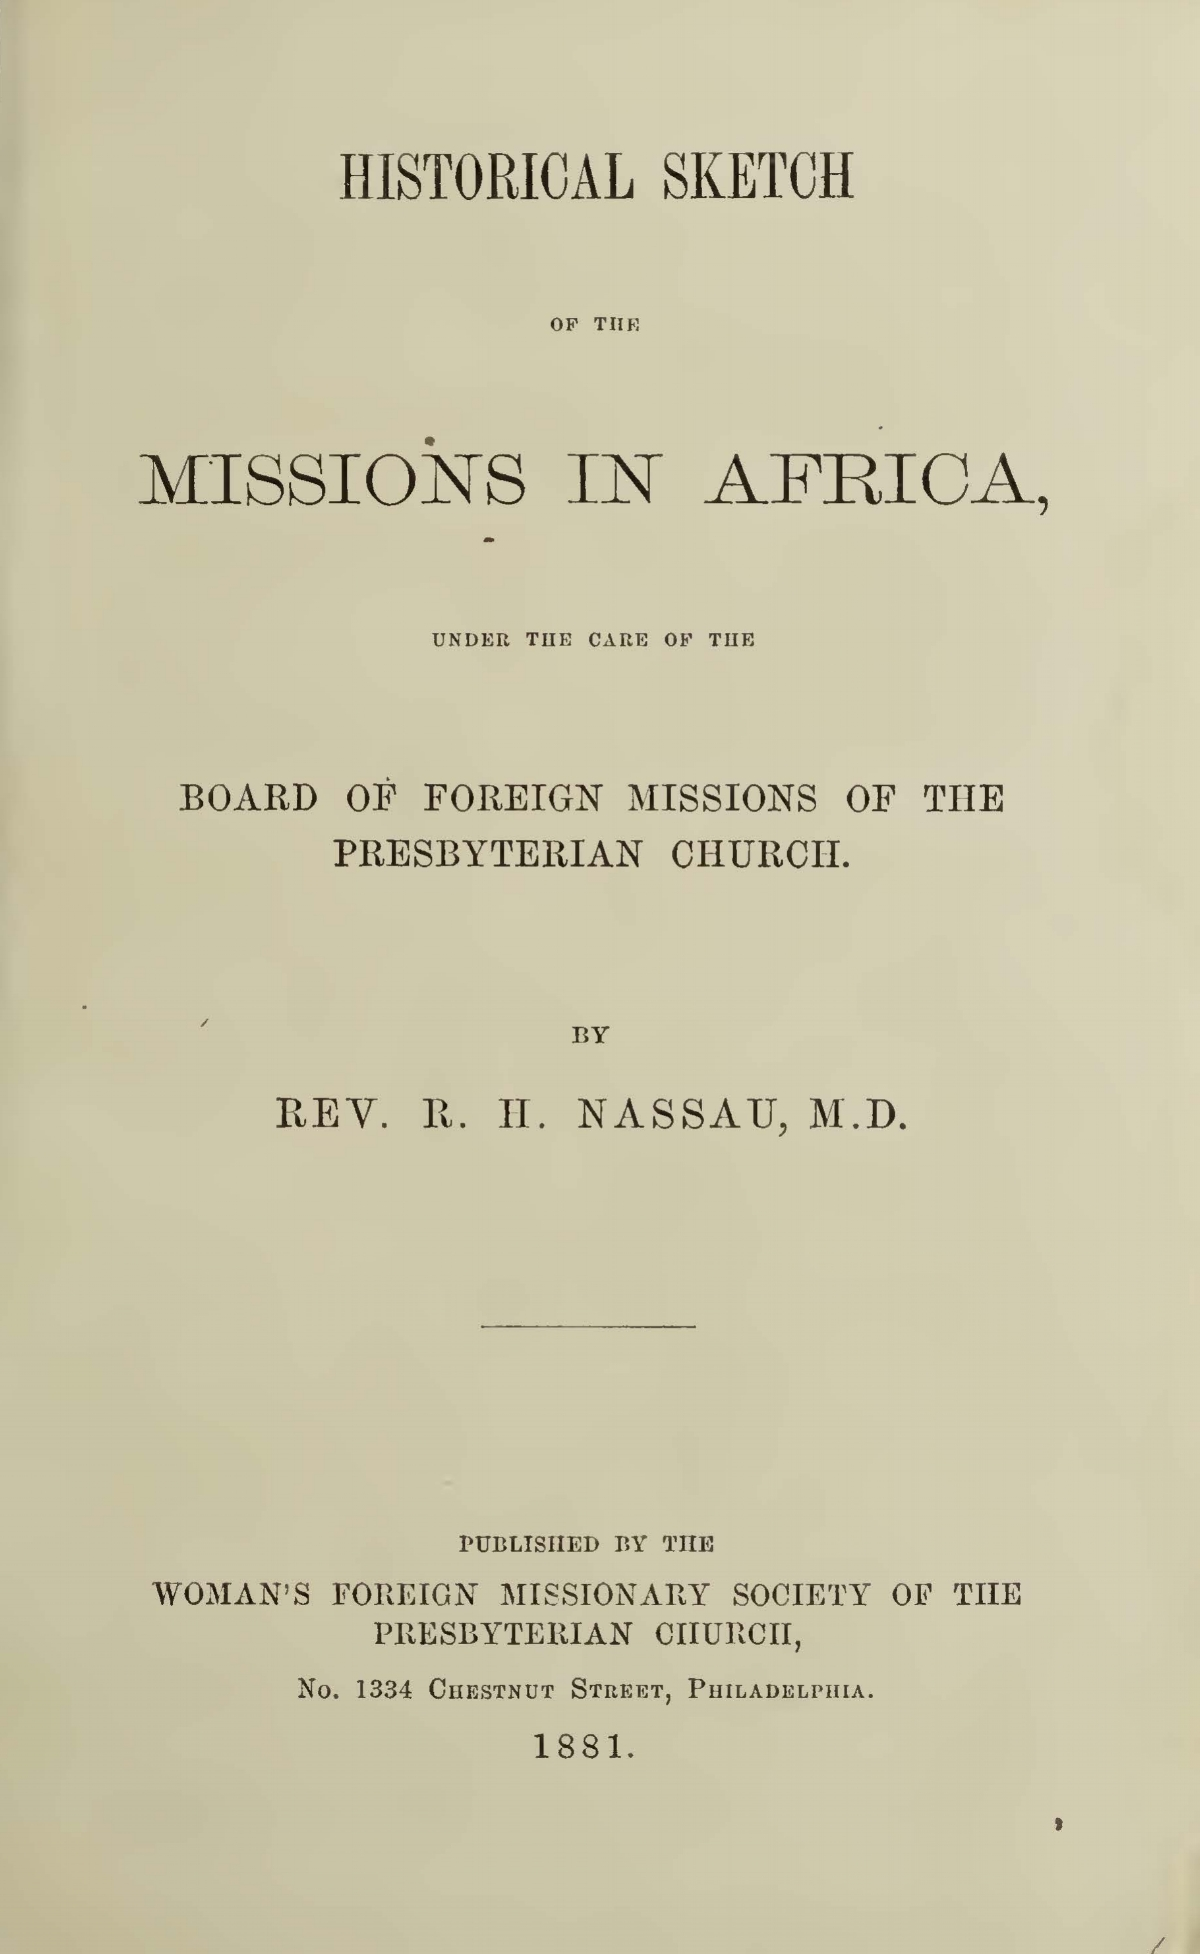 Nassau, Robert Hamill, Historical Sketch of the Missions in Africa Title Page.jpg